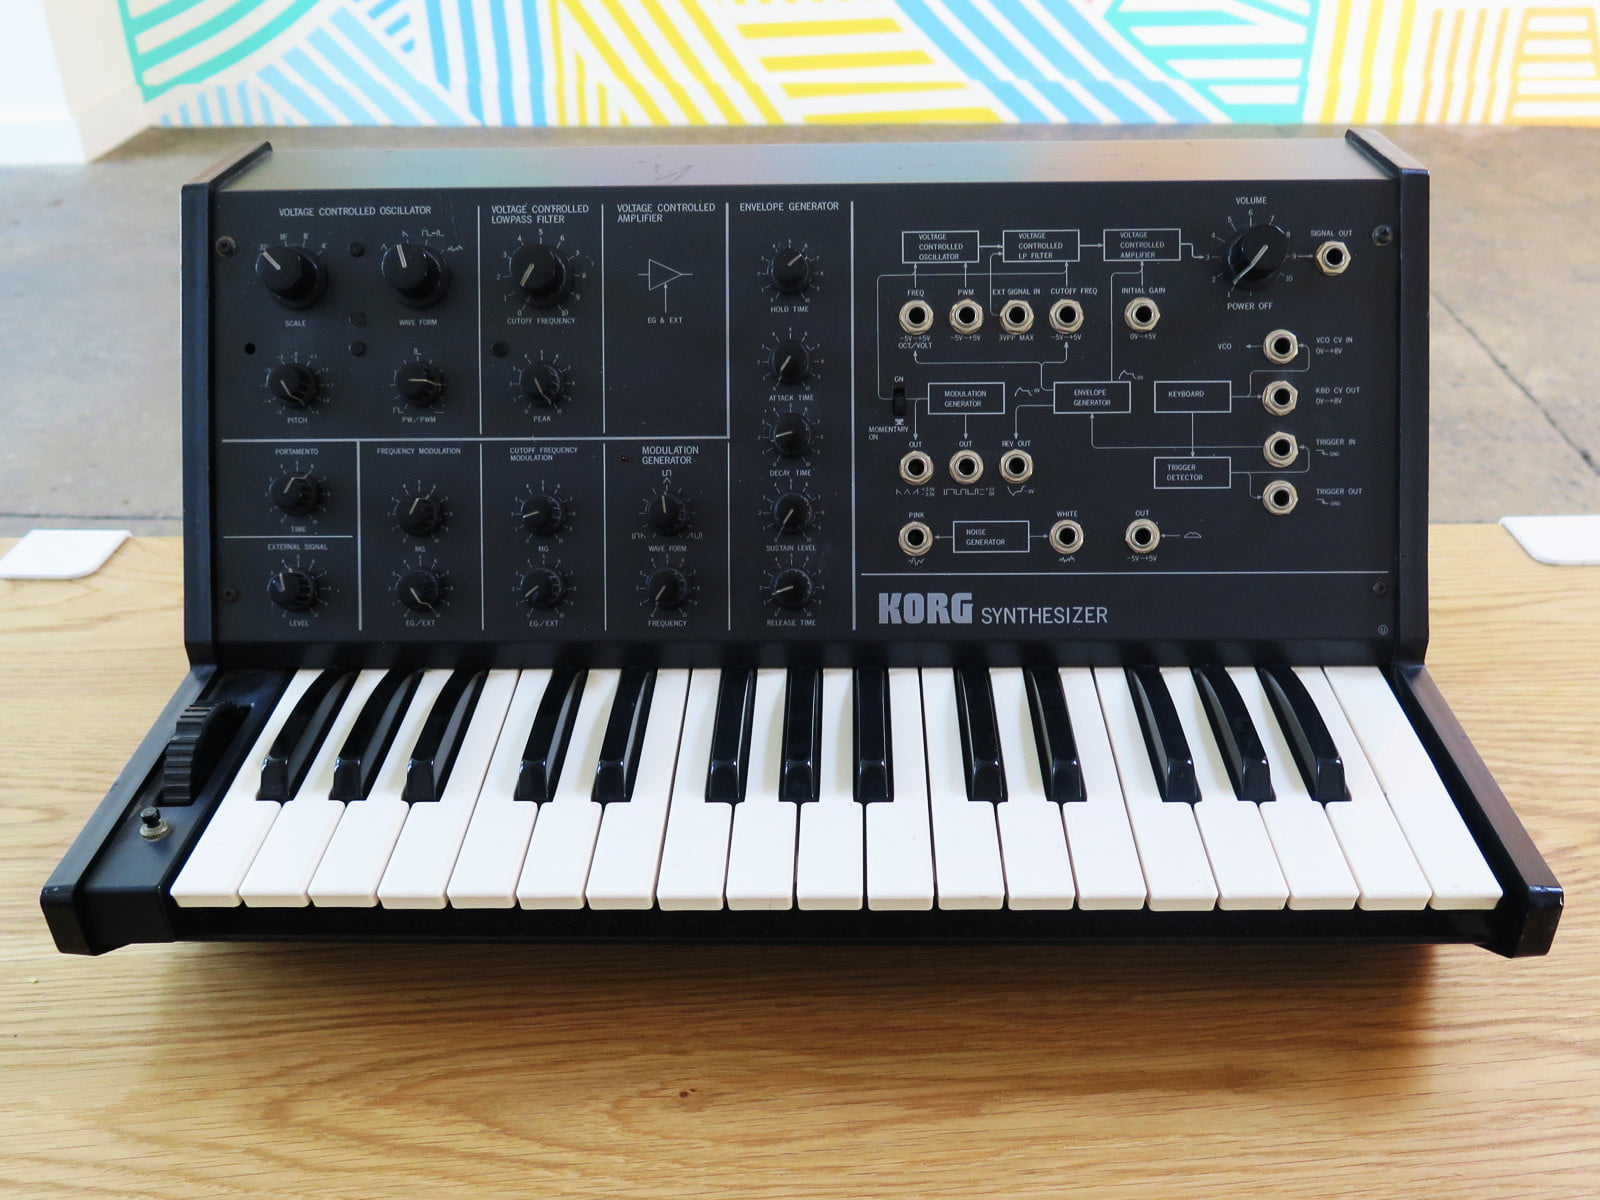 ms10 from mars brings the sounds of korg 39 s semi modular synth. Black Bedroom Furniture Sets. Home Design Ideas